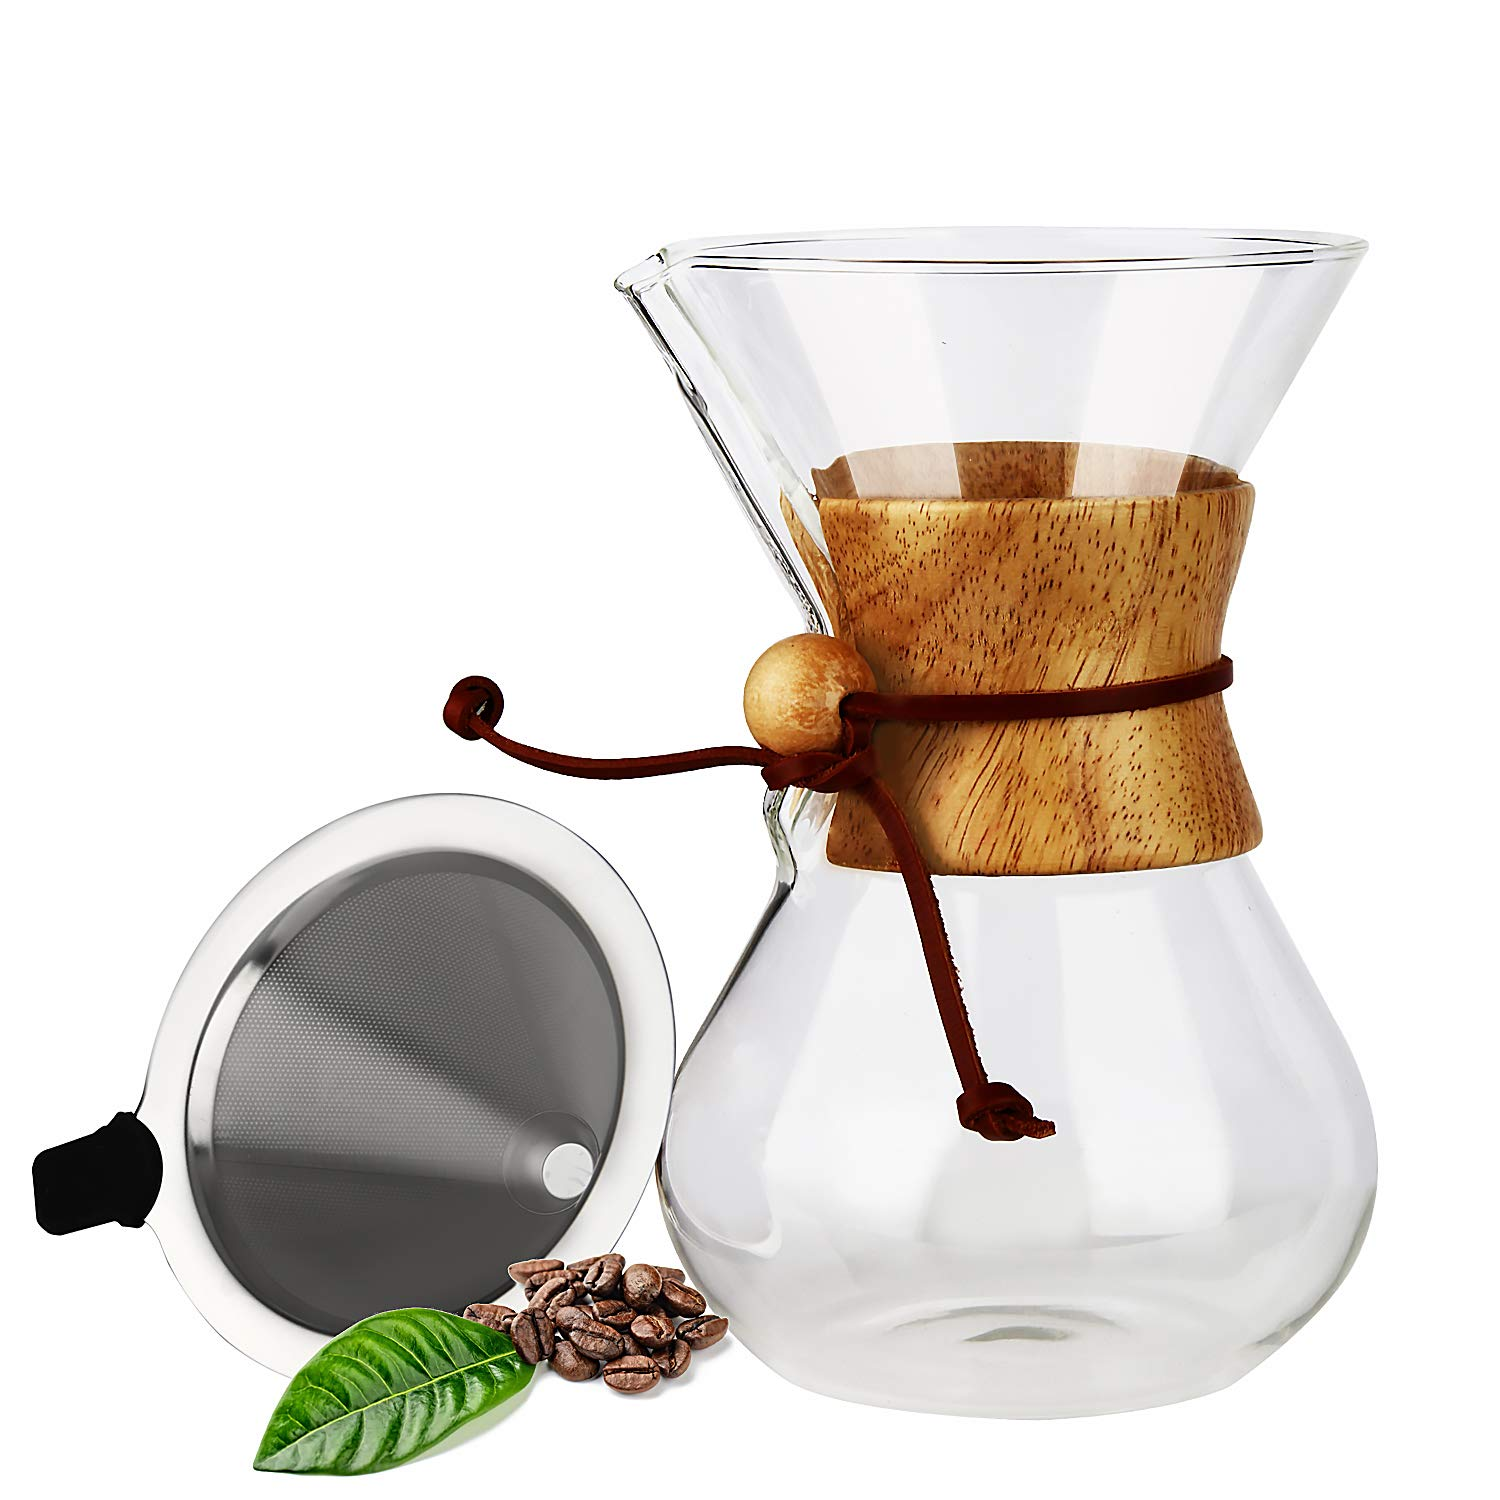 OAMCEG 20 oz Borosilicate Glass Carafe and Reusable Stainless Steel Permanent Filter Manual Coffee Dripper Brewer with Real Wood Sleeve Pour Over Coffee Maker